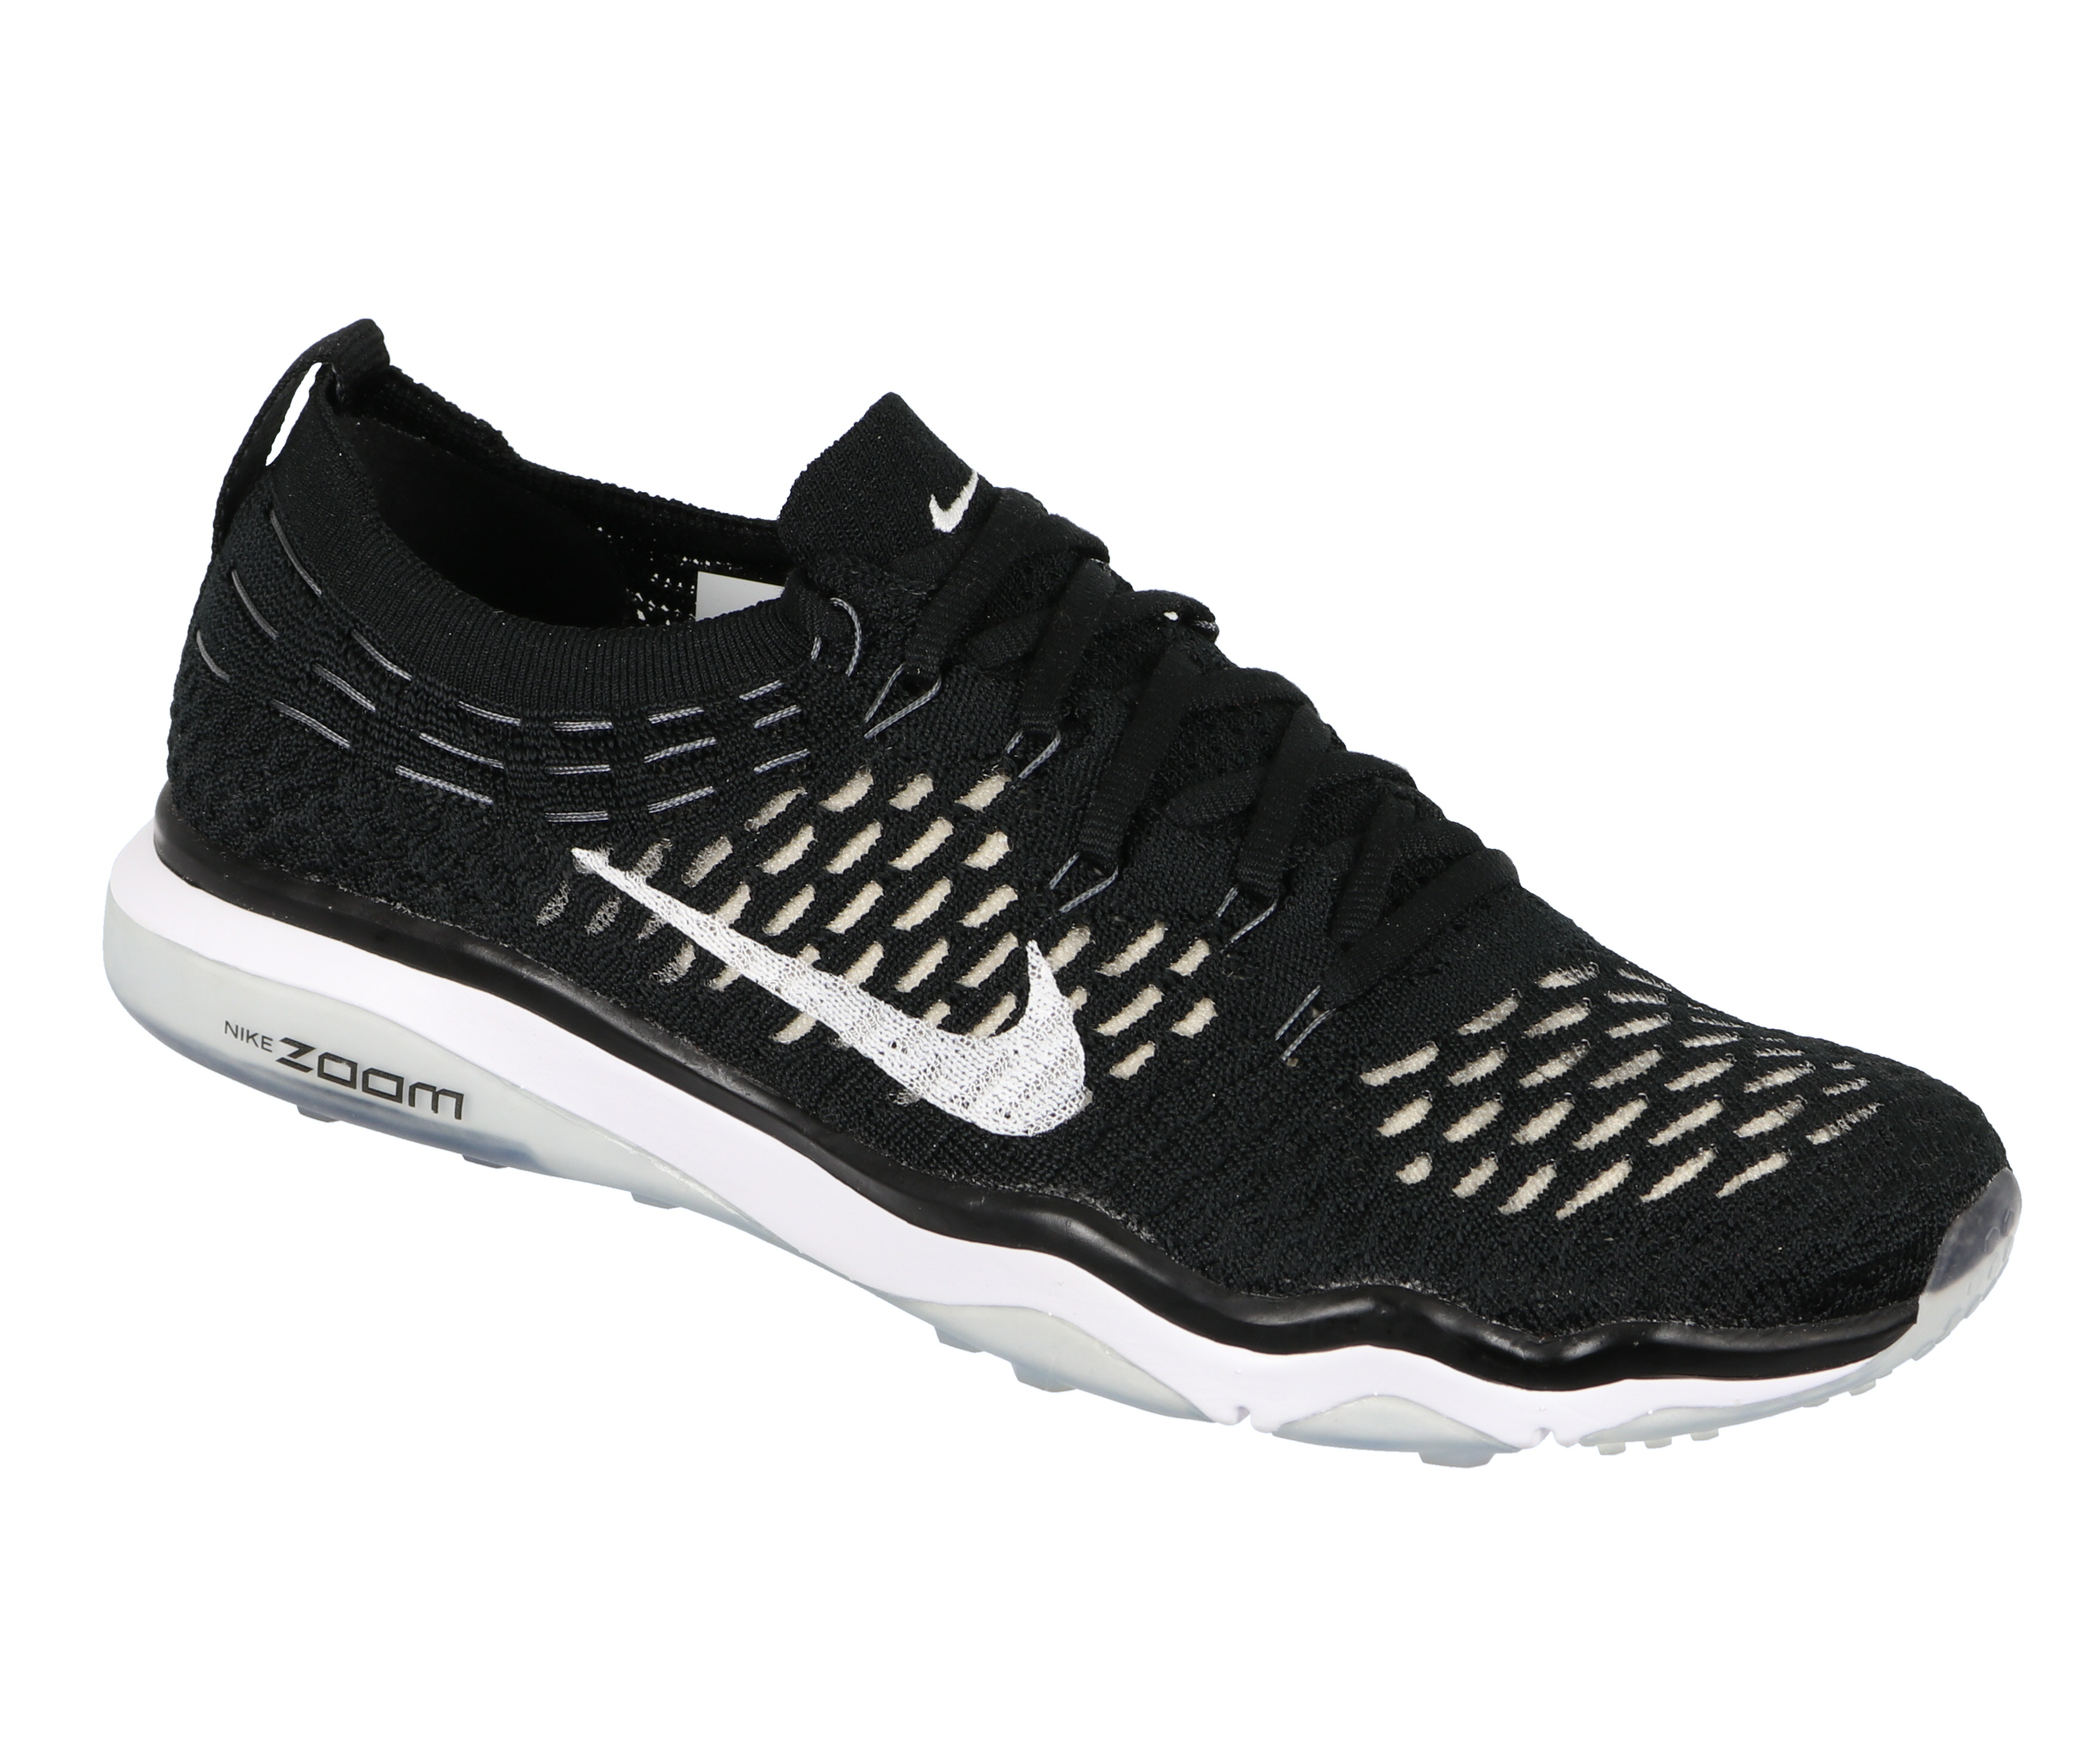 07abc9665e7 Nike Women s Air Zoom Fearless Flyknit Cross Training Shoes Black ...